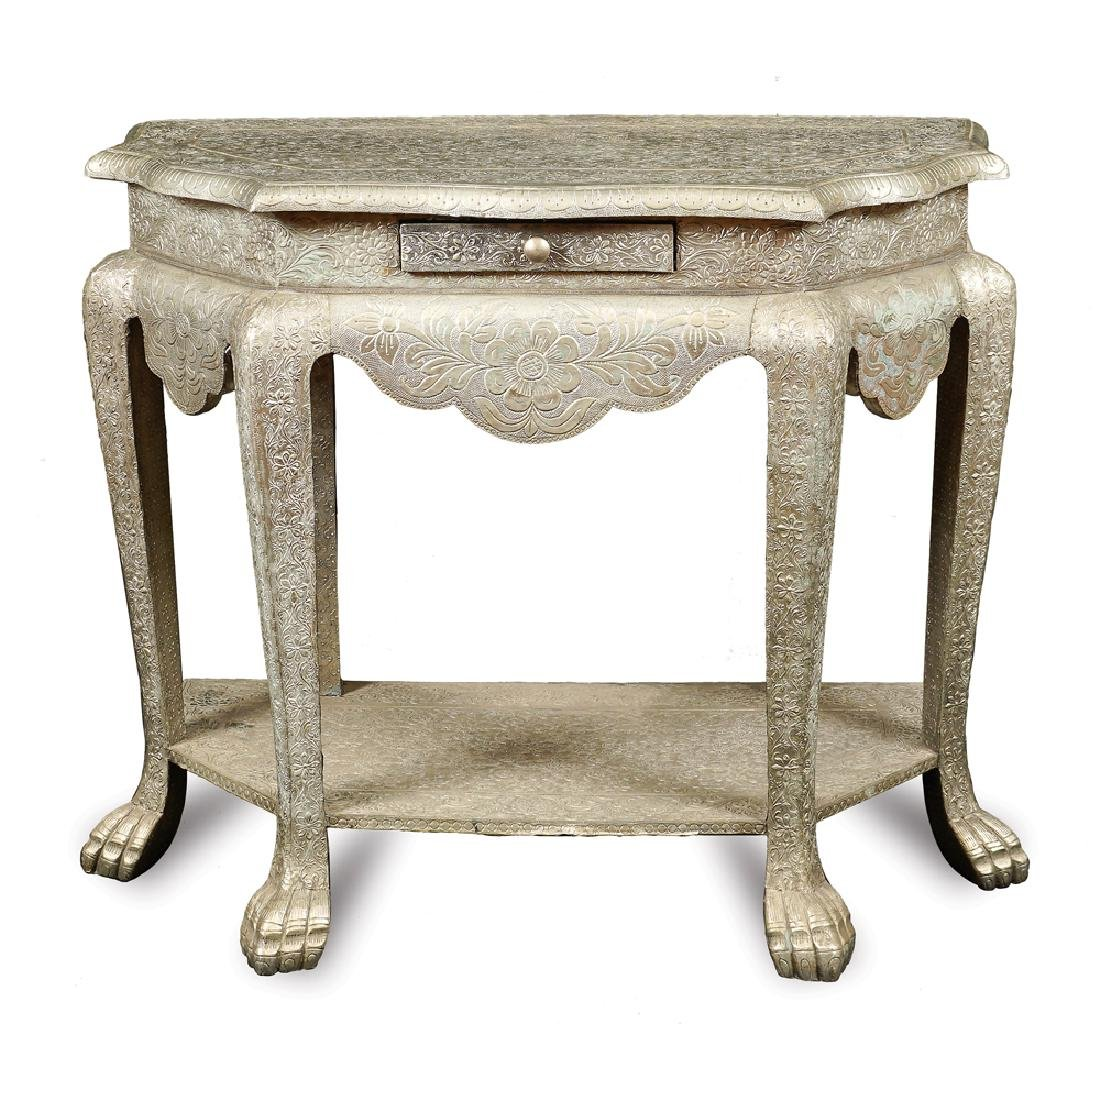 A wooden console Oriental manifacture 20th century